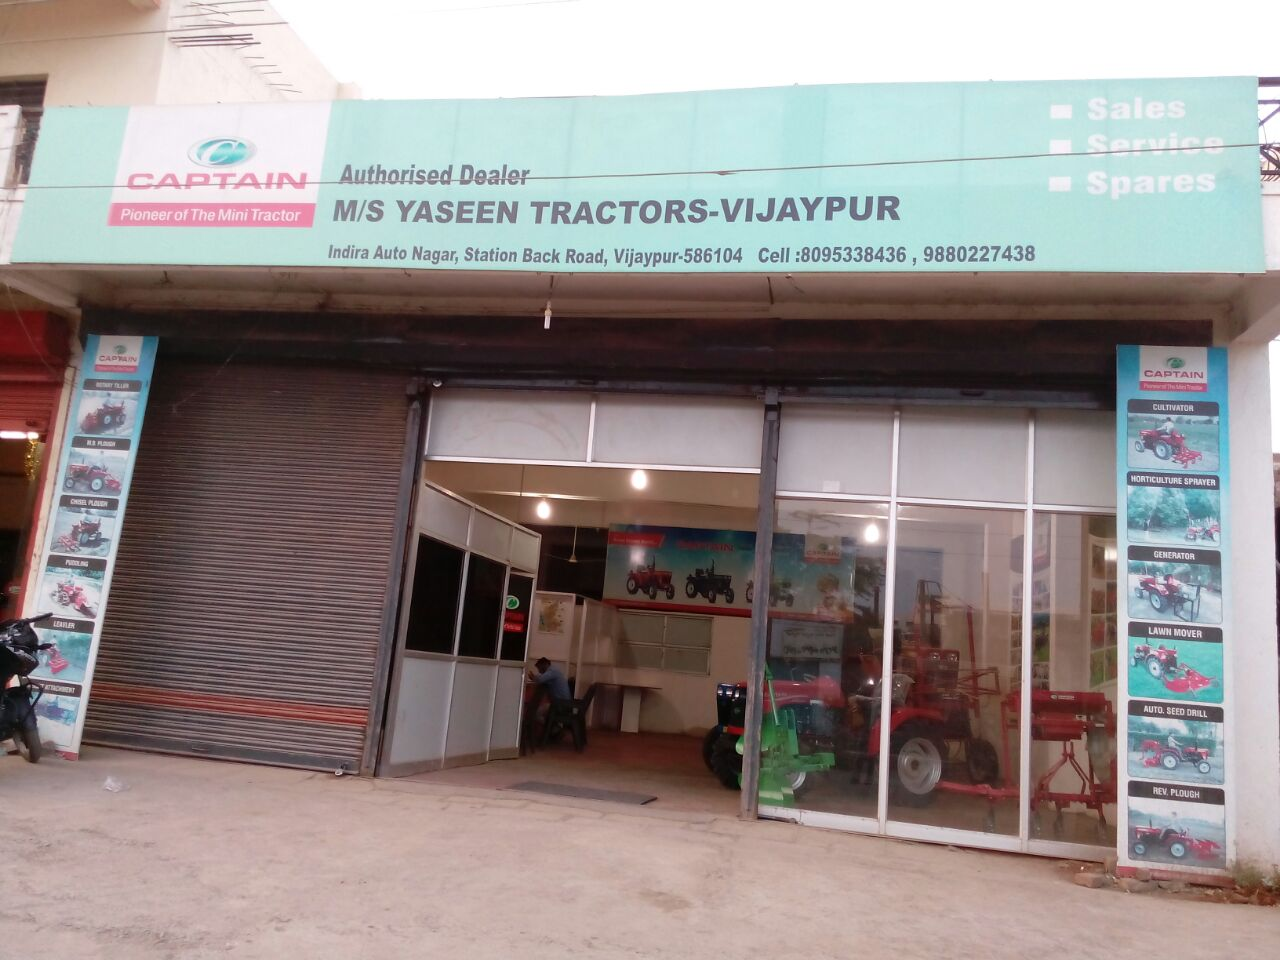 Captain Tractors Dealer in Bijapur